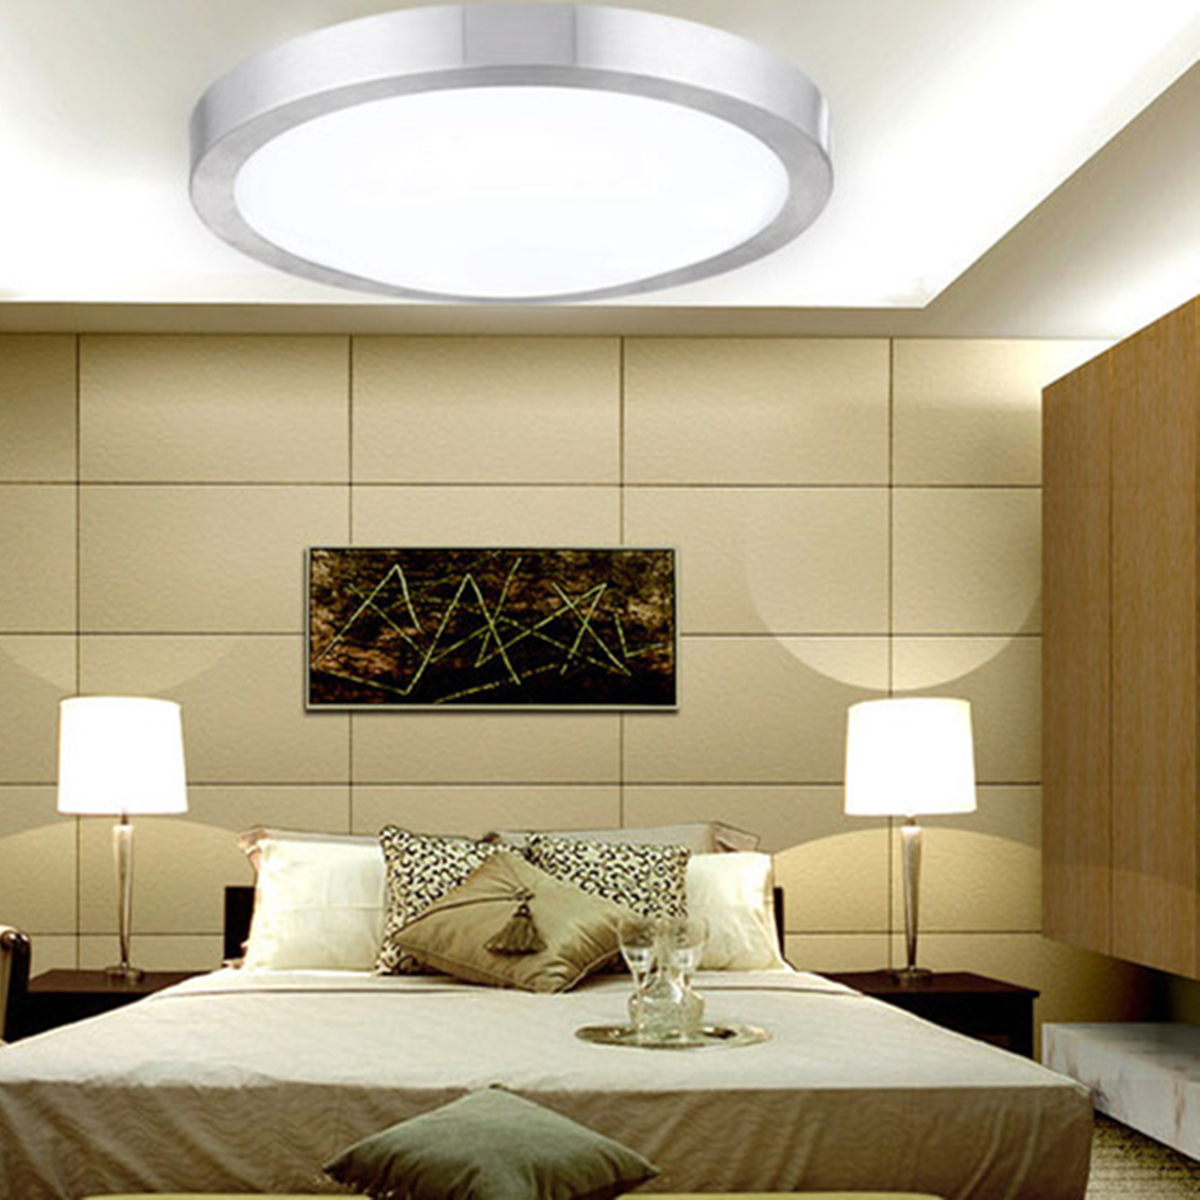 5-36W LED Round Modern Ceiling Light Home Bedroom Kitchen